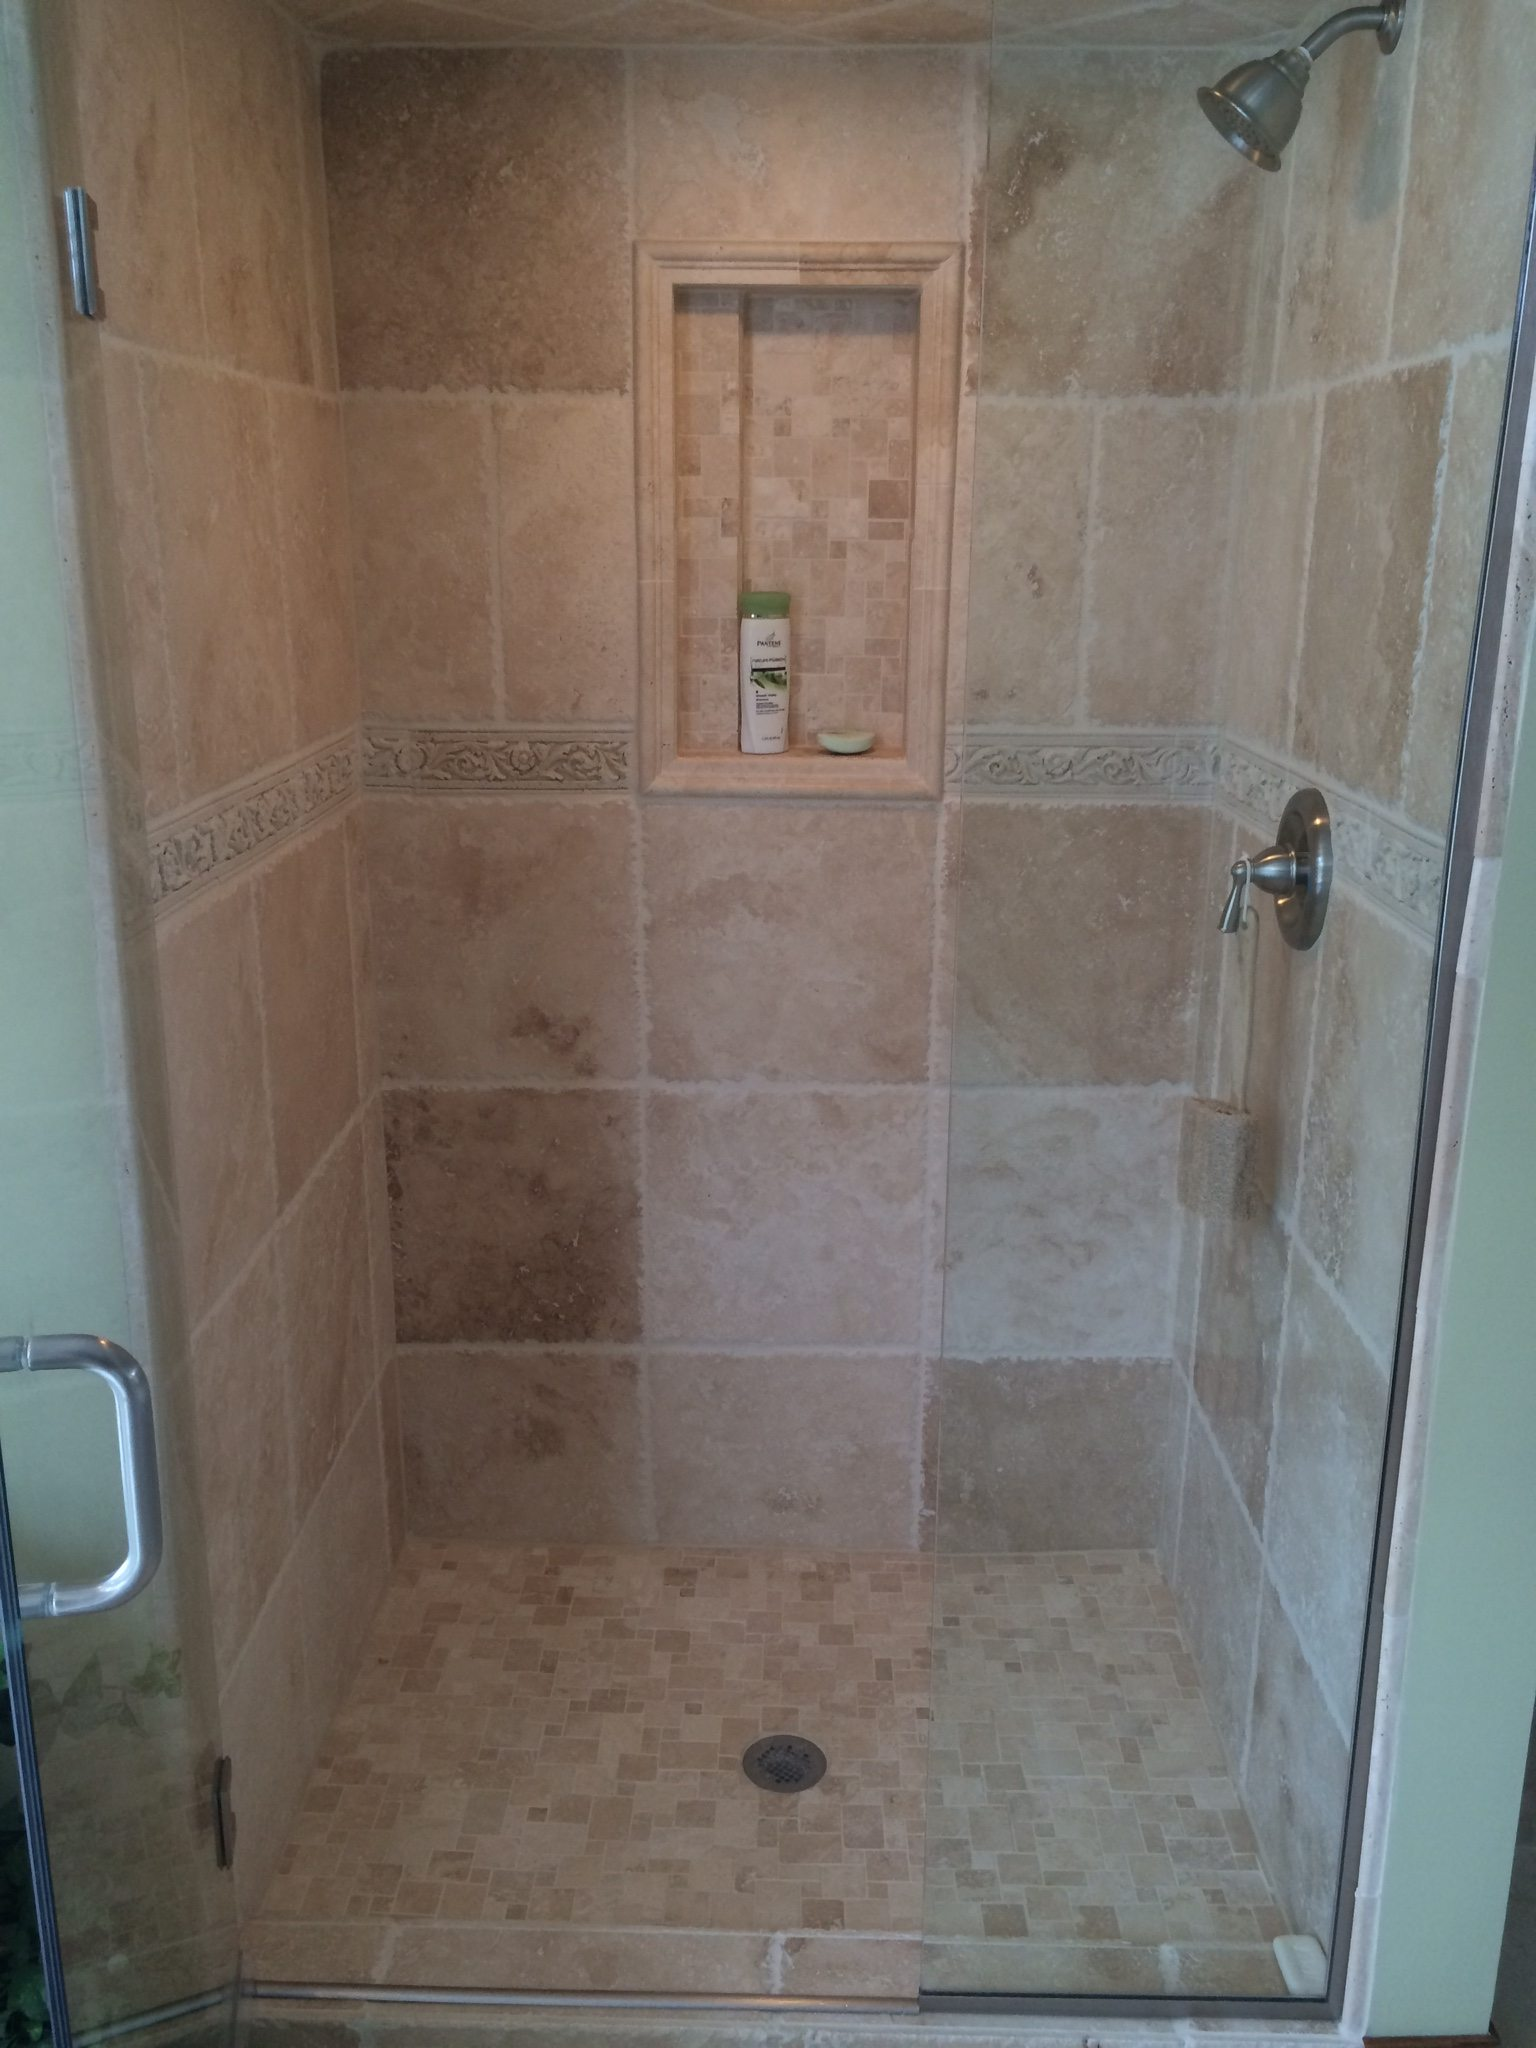 Custum Tile Shower Remodel - We love the intricate detail work we were able to incorporate into this bathroom remodel.